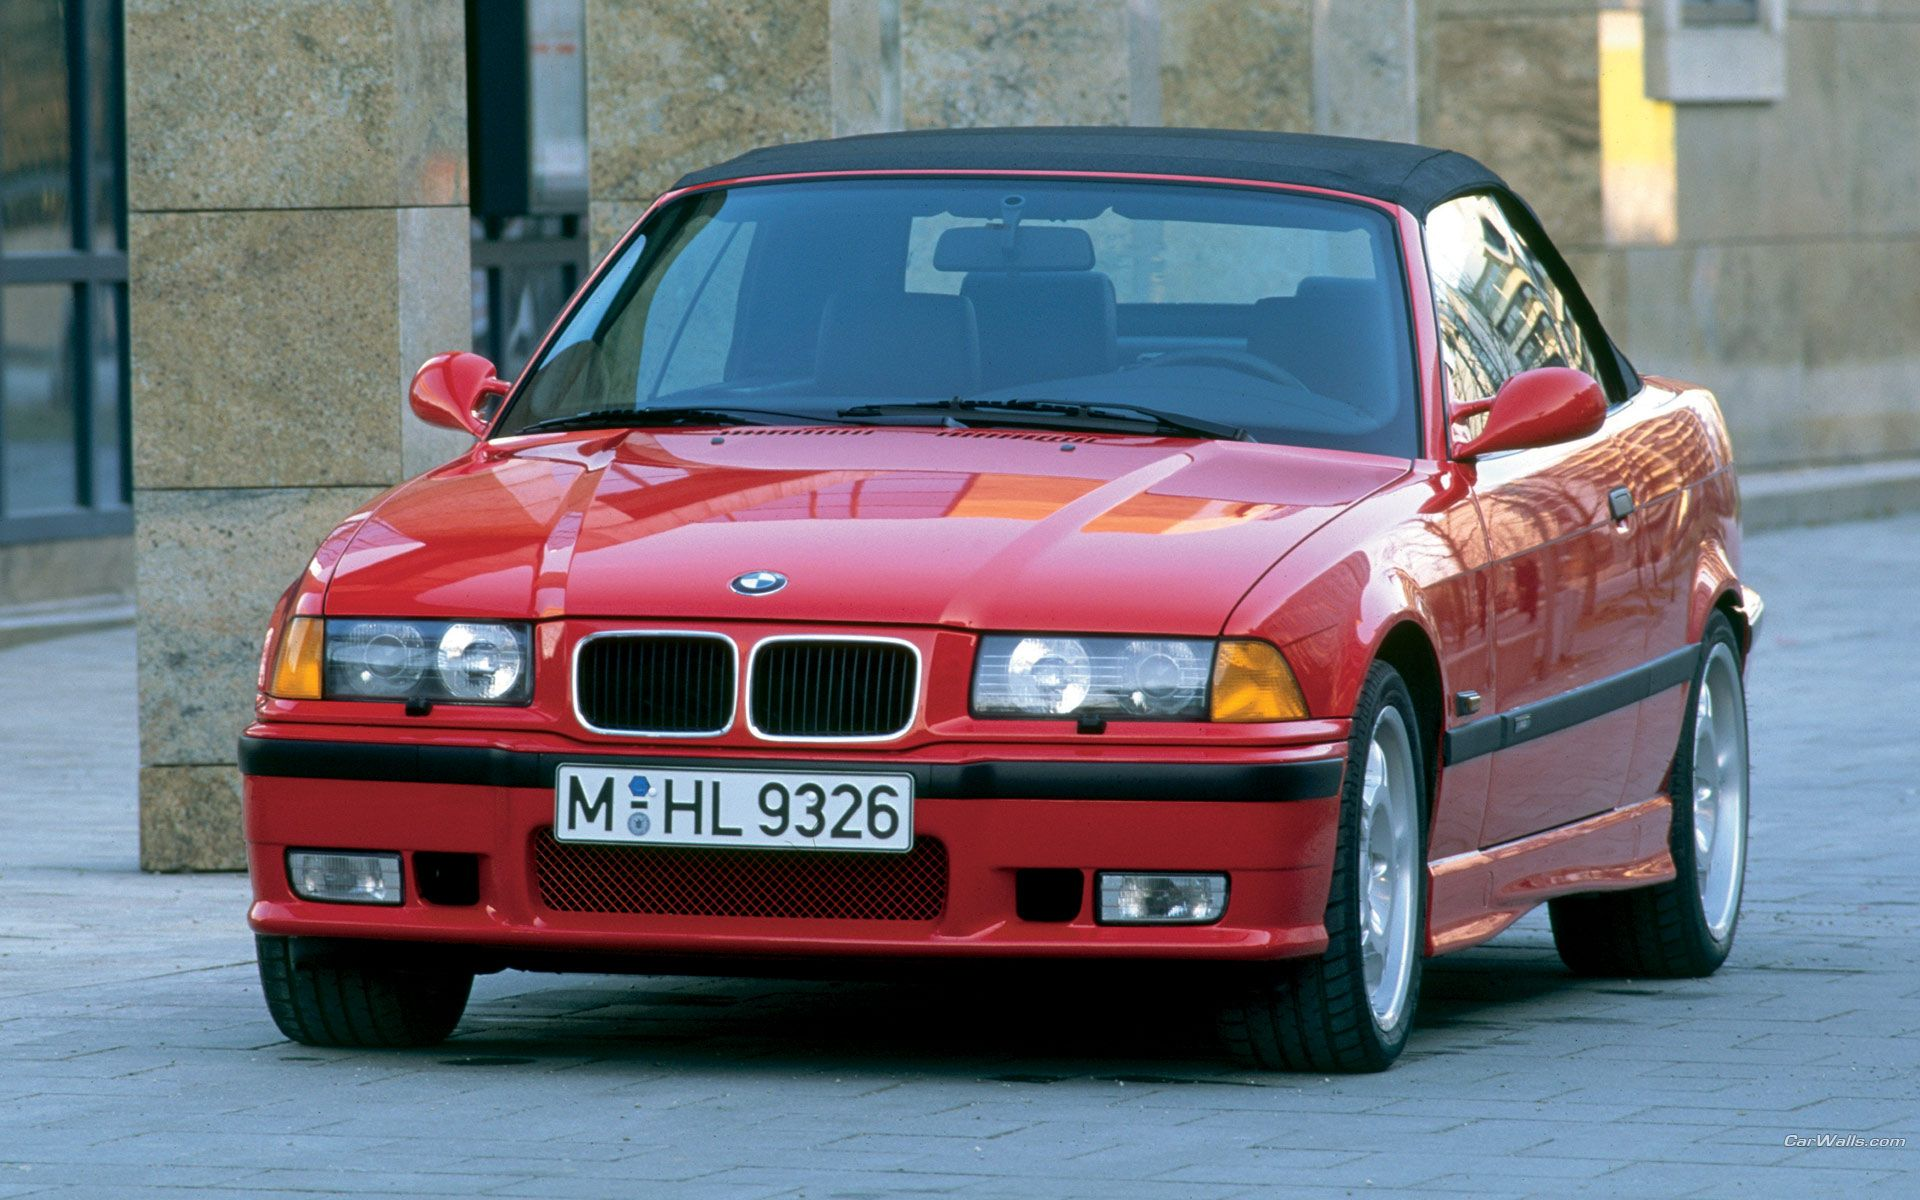 Bmw e36 m3 convertible check out these bimmers http